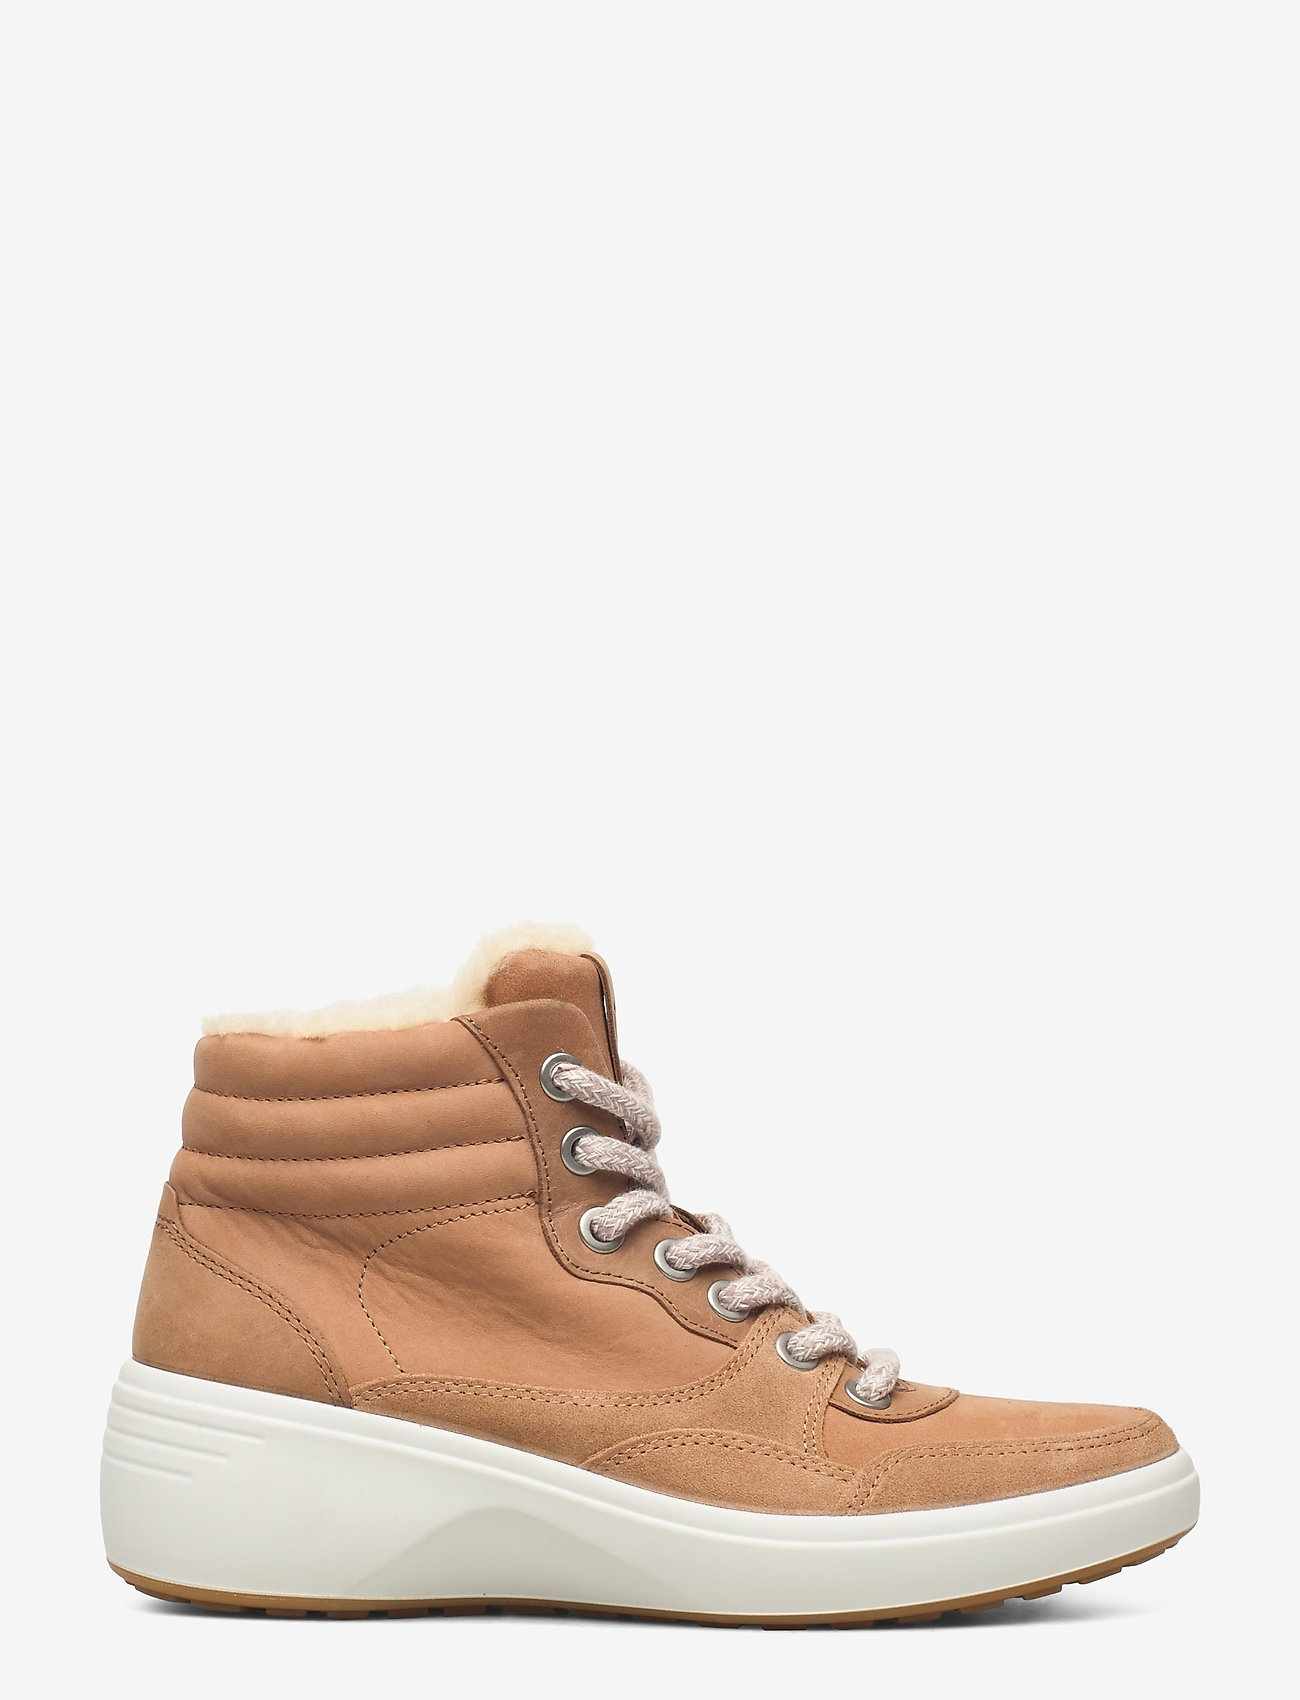 ECCO - SOFT 7 WEDGE TRED - flat ankle boots - cashmere/cashmere/whiskey - 1